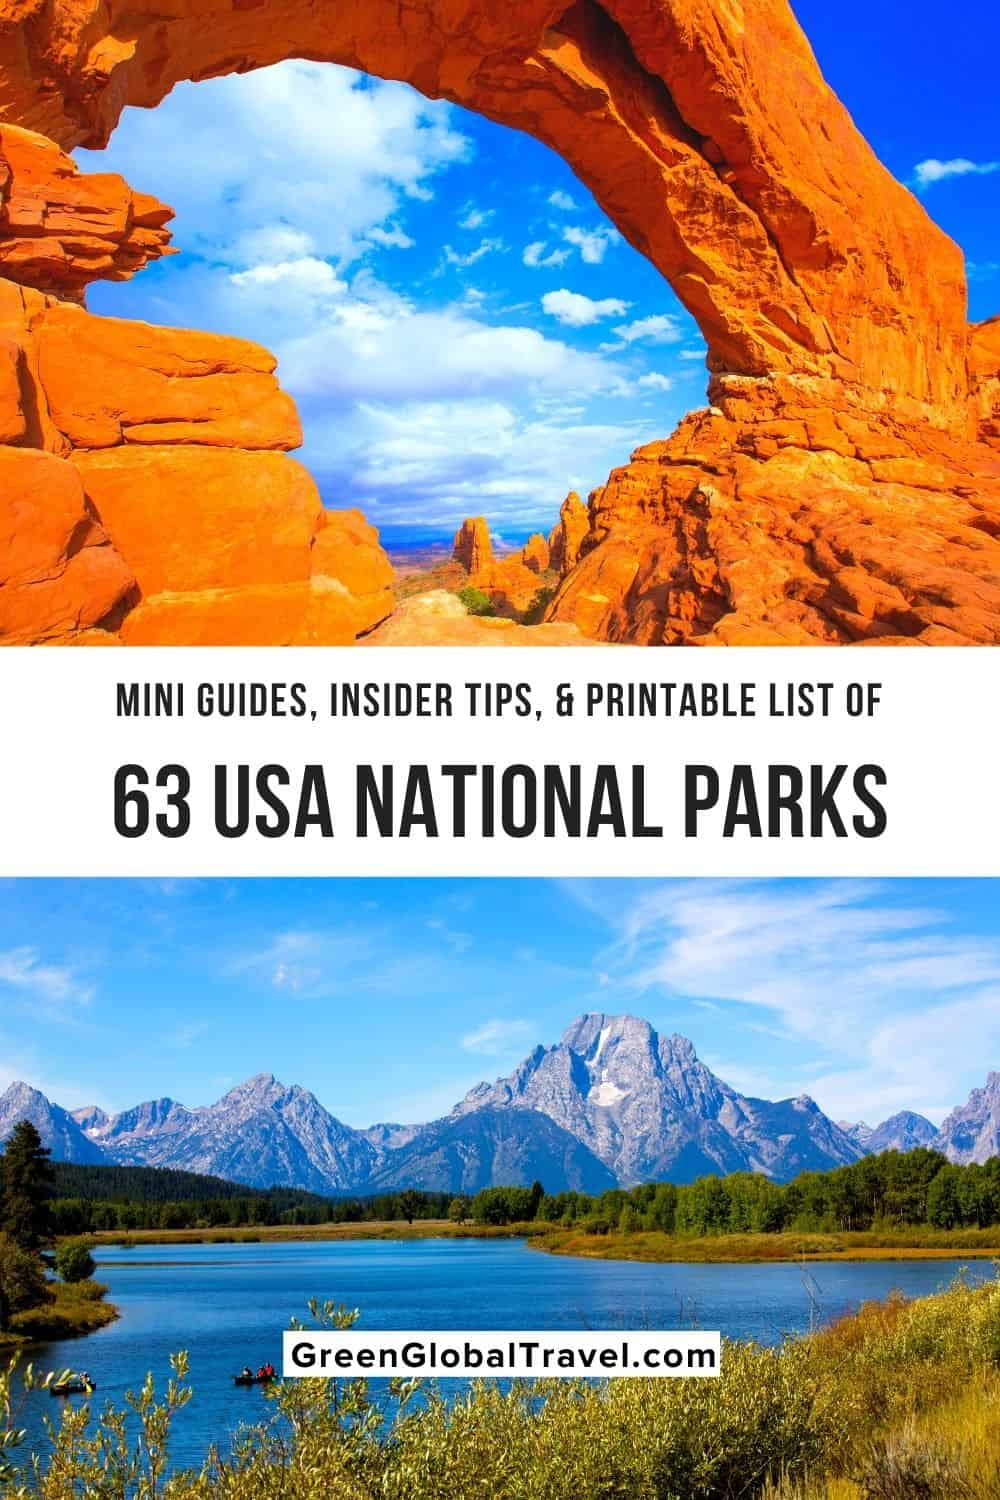 List of all 63 National Parks in the United States By State: including US National Parks Map, Printable National Park Checklist, Mini National Park Guides, FAQs & National Park Information. |National Parks United States | National Parks Map | National Parks USA | National Parks List